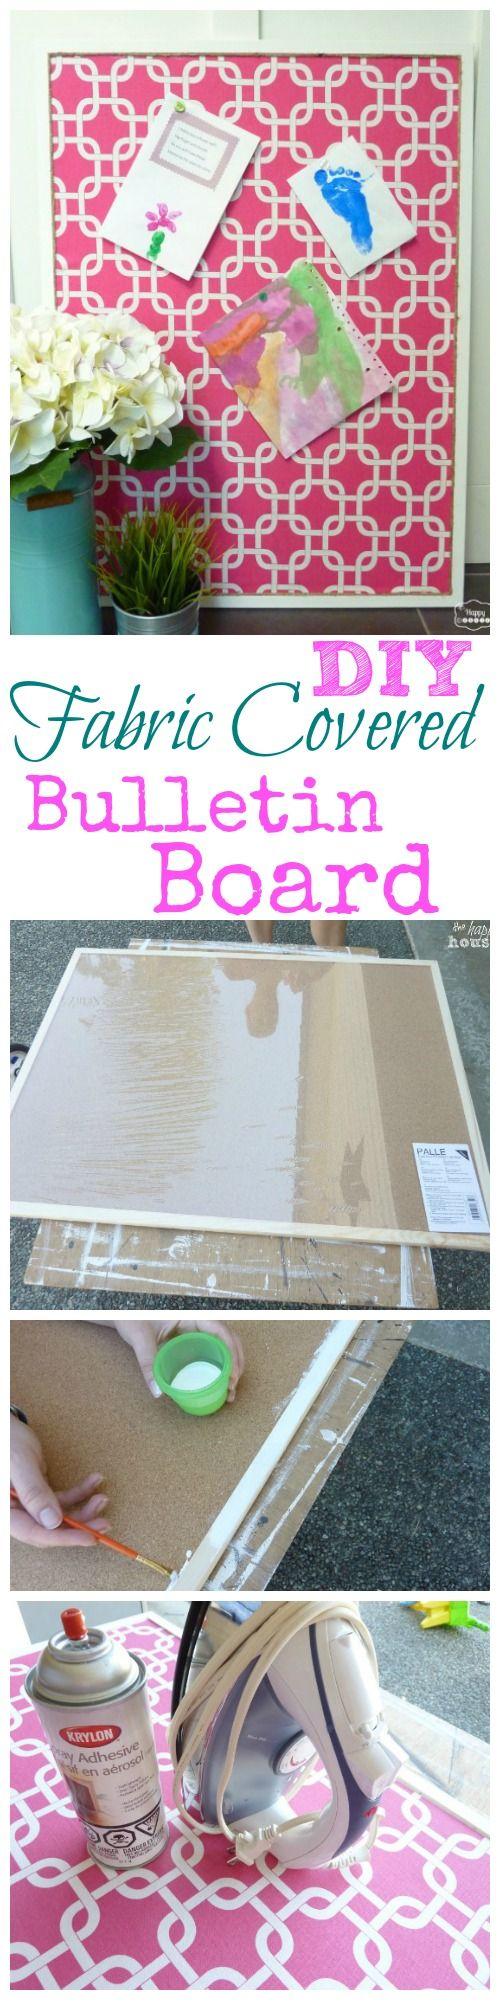 best 25 fabric bulletin boards ideas on pinterest large